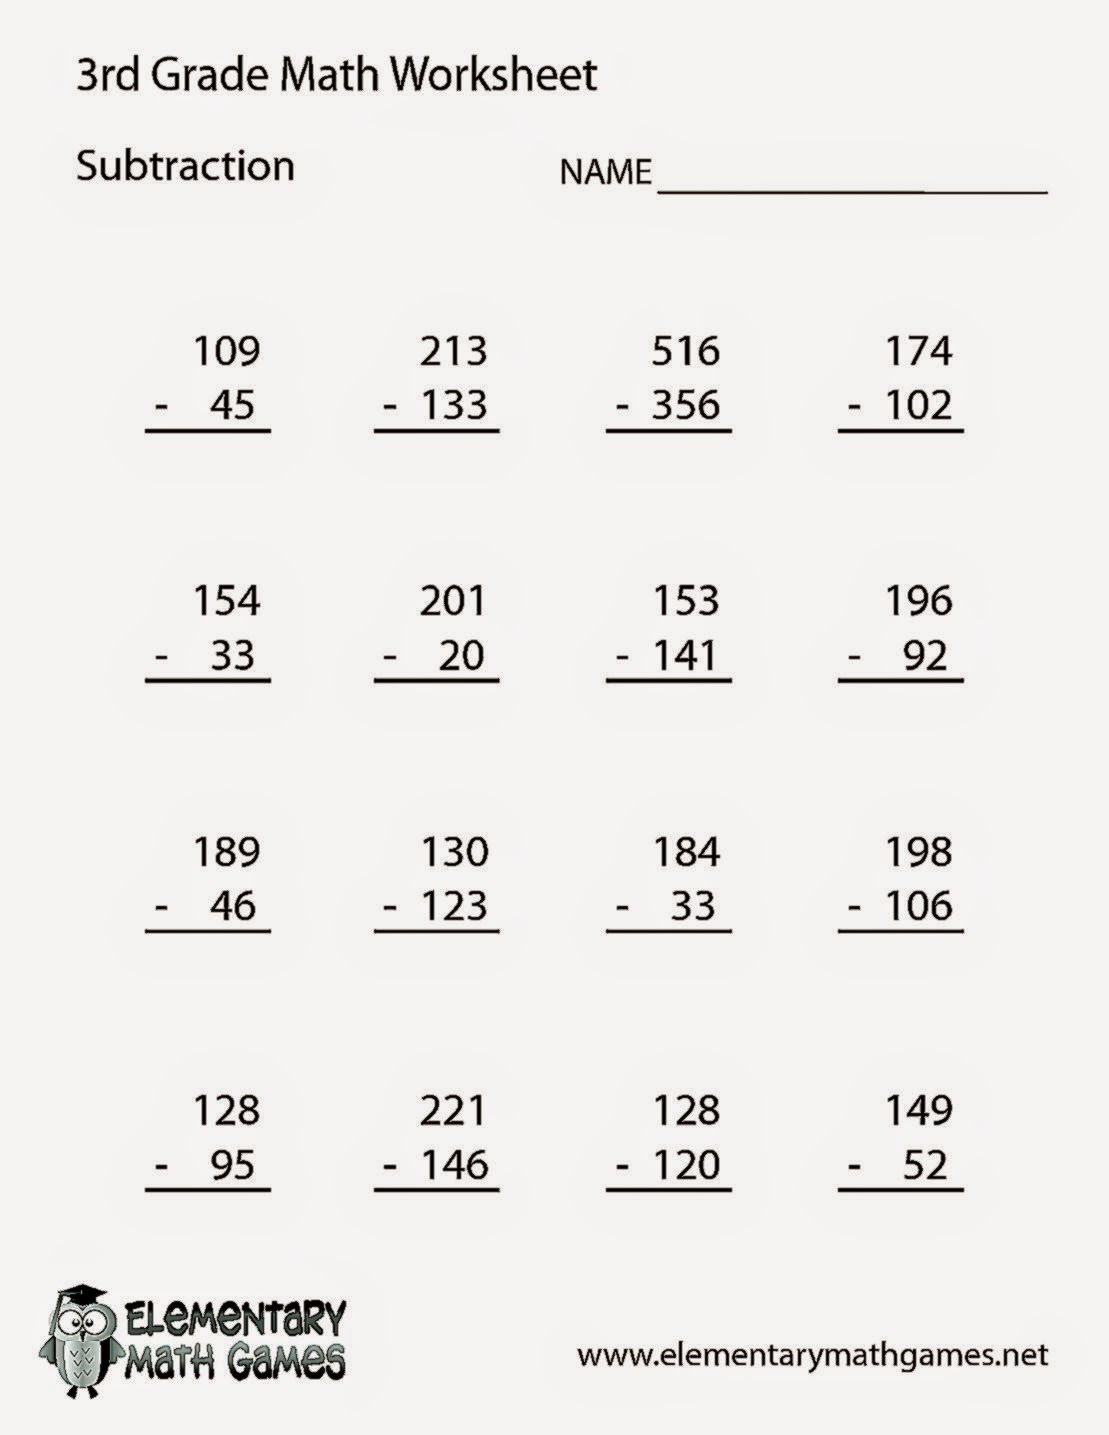 Estimation Worksheet 3rd Grade 7th Grade Math Estimation Worksheetsml Math Estimation